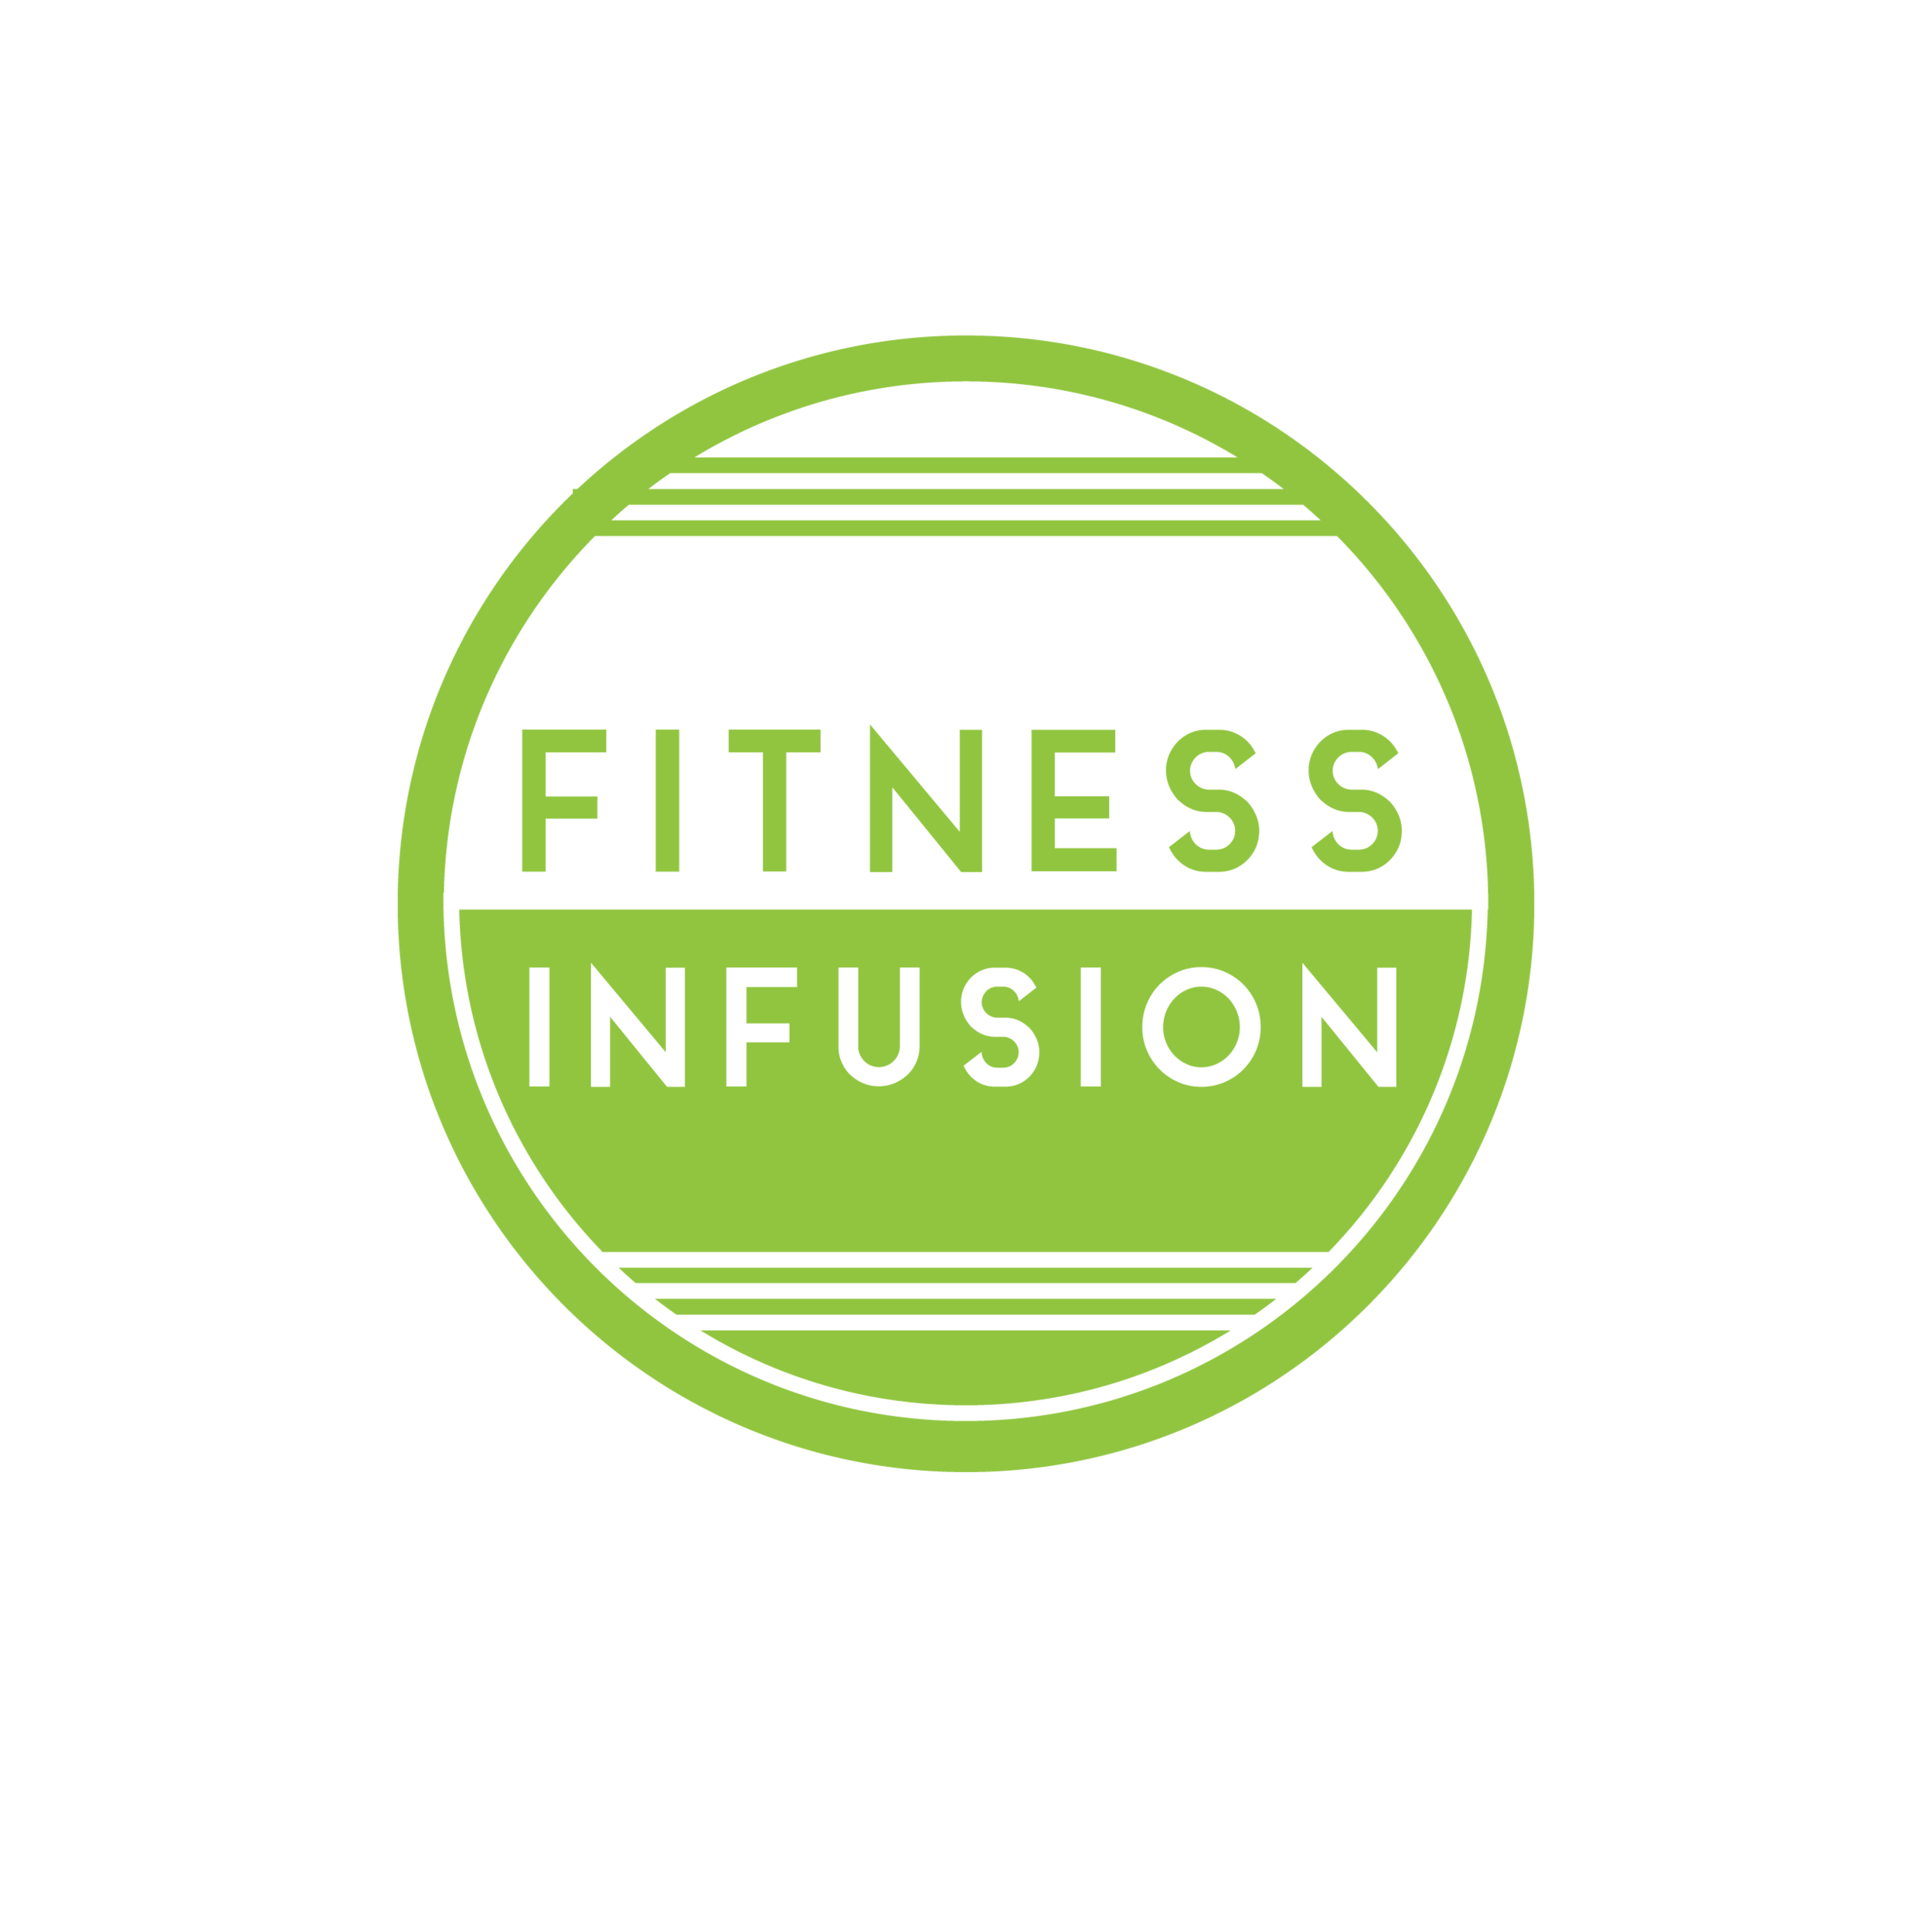 fitnessinfusion_logo_revised-01.png